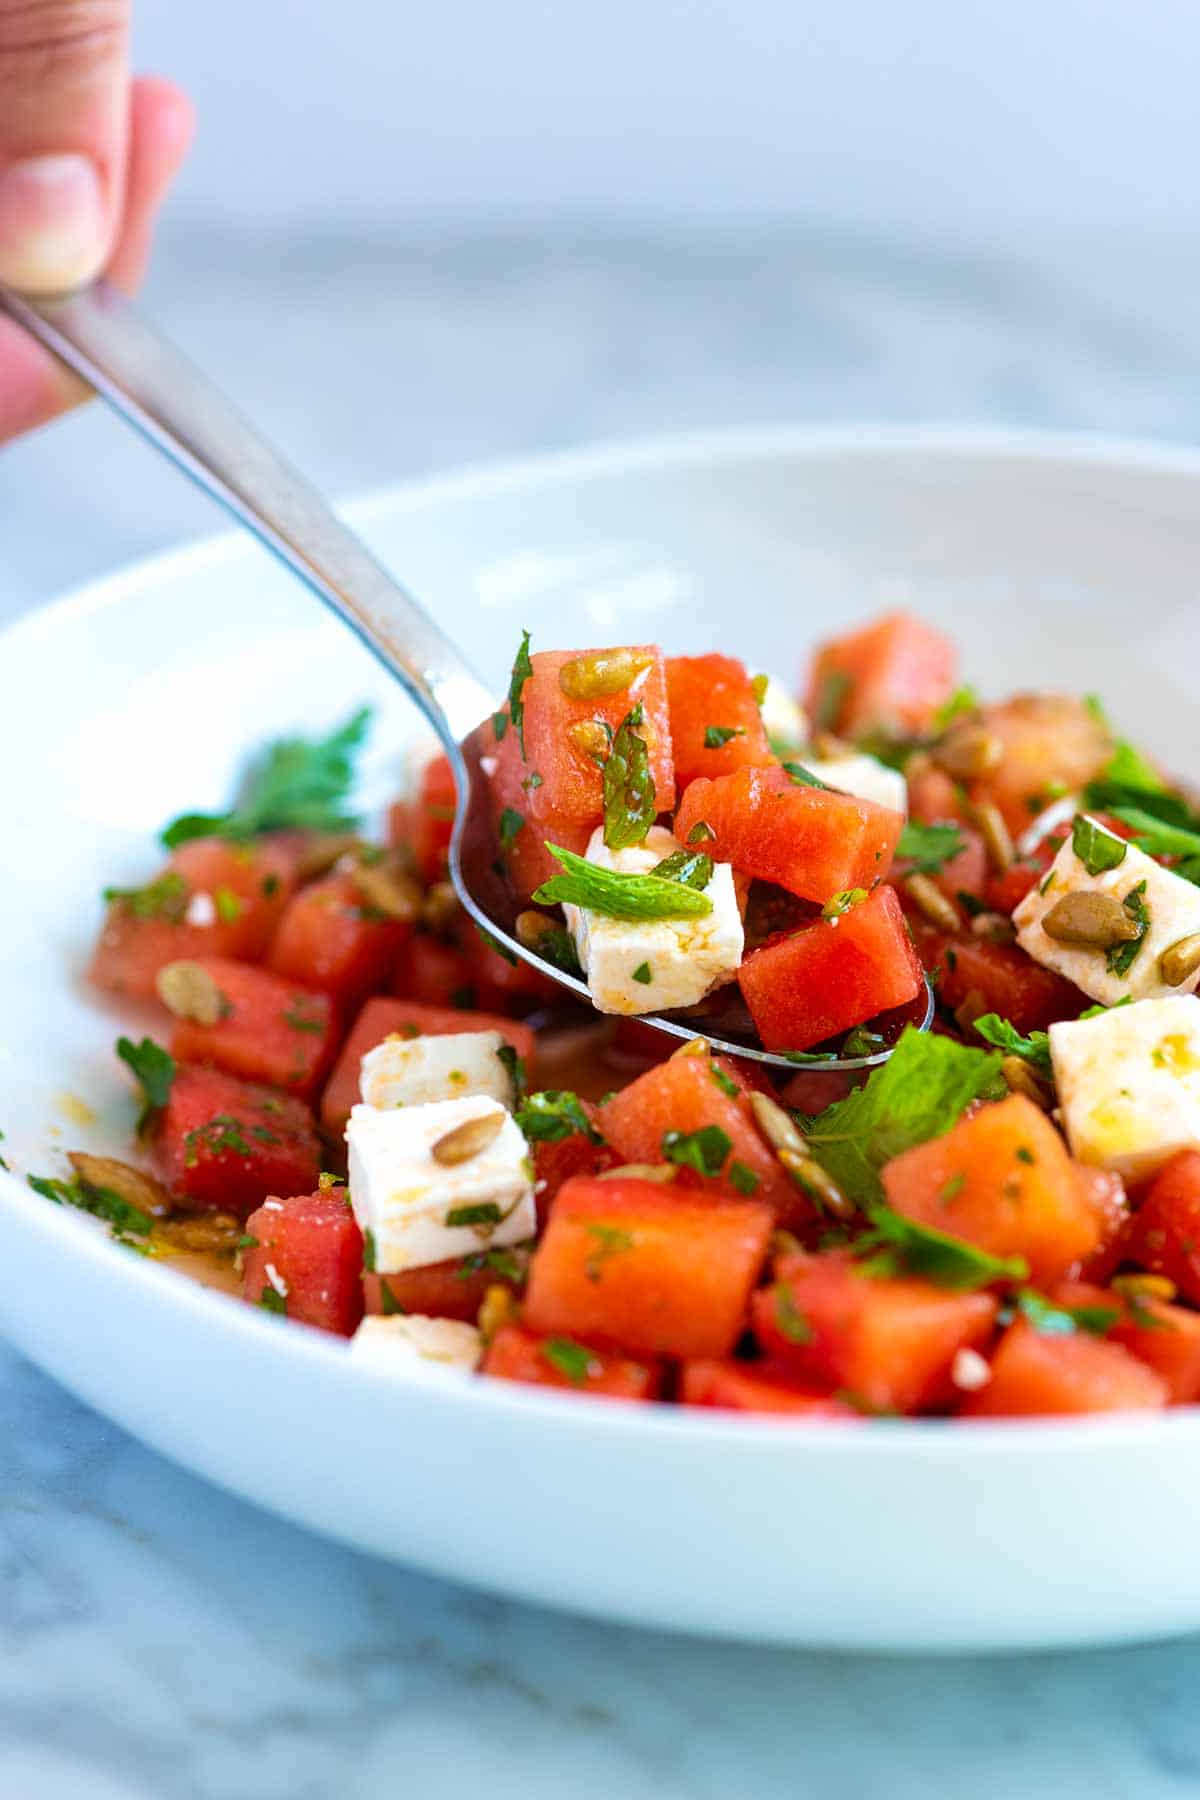 Our Favorite Watermelon Salad Recipe with feta cheese, sunflower seeds, and fresh herbs.